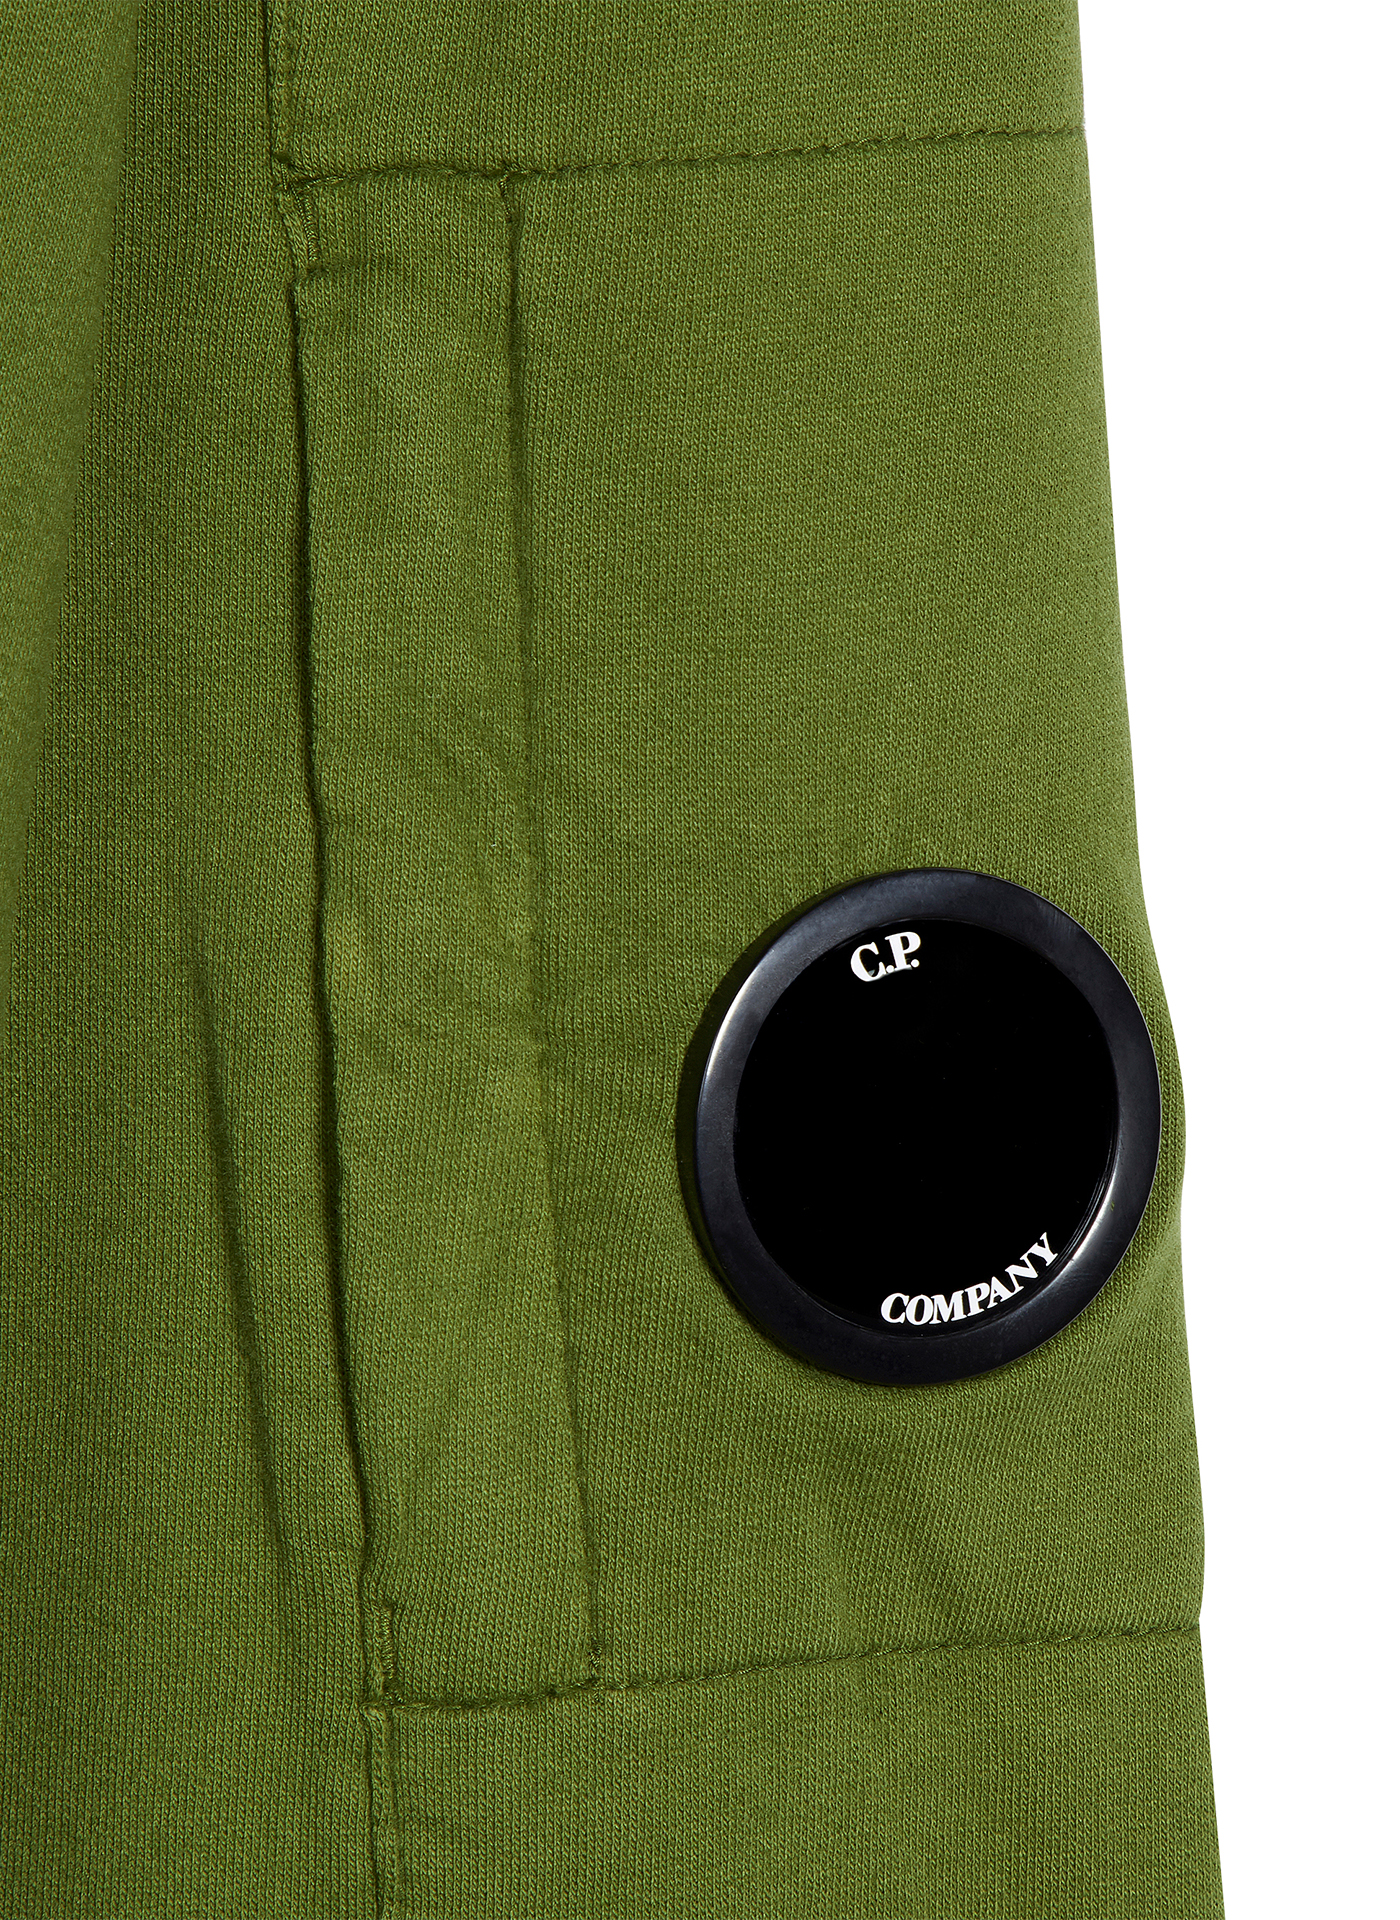 Green C.P. Company jumper detail shot of the sleeve and black logo